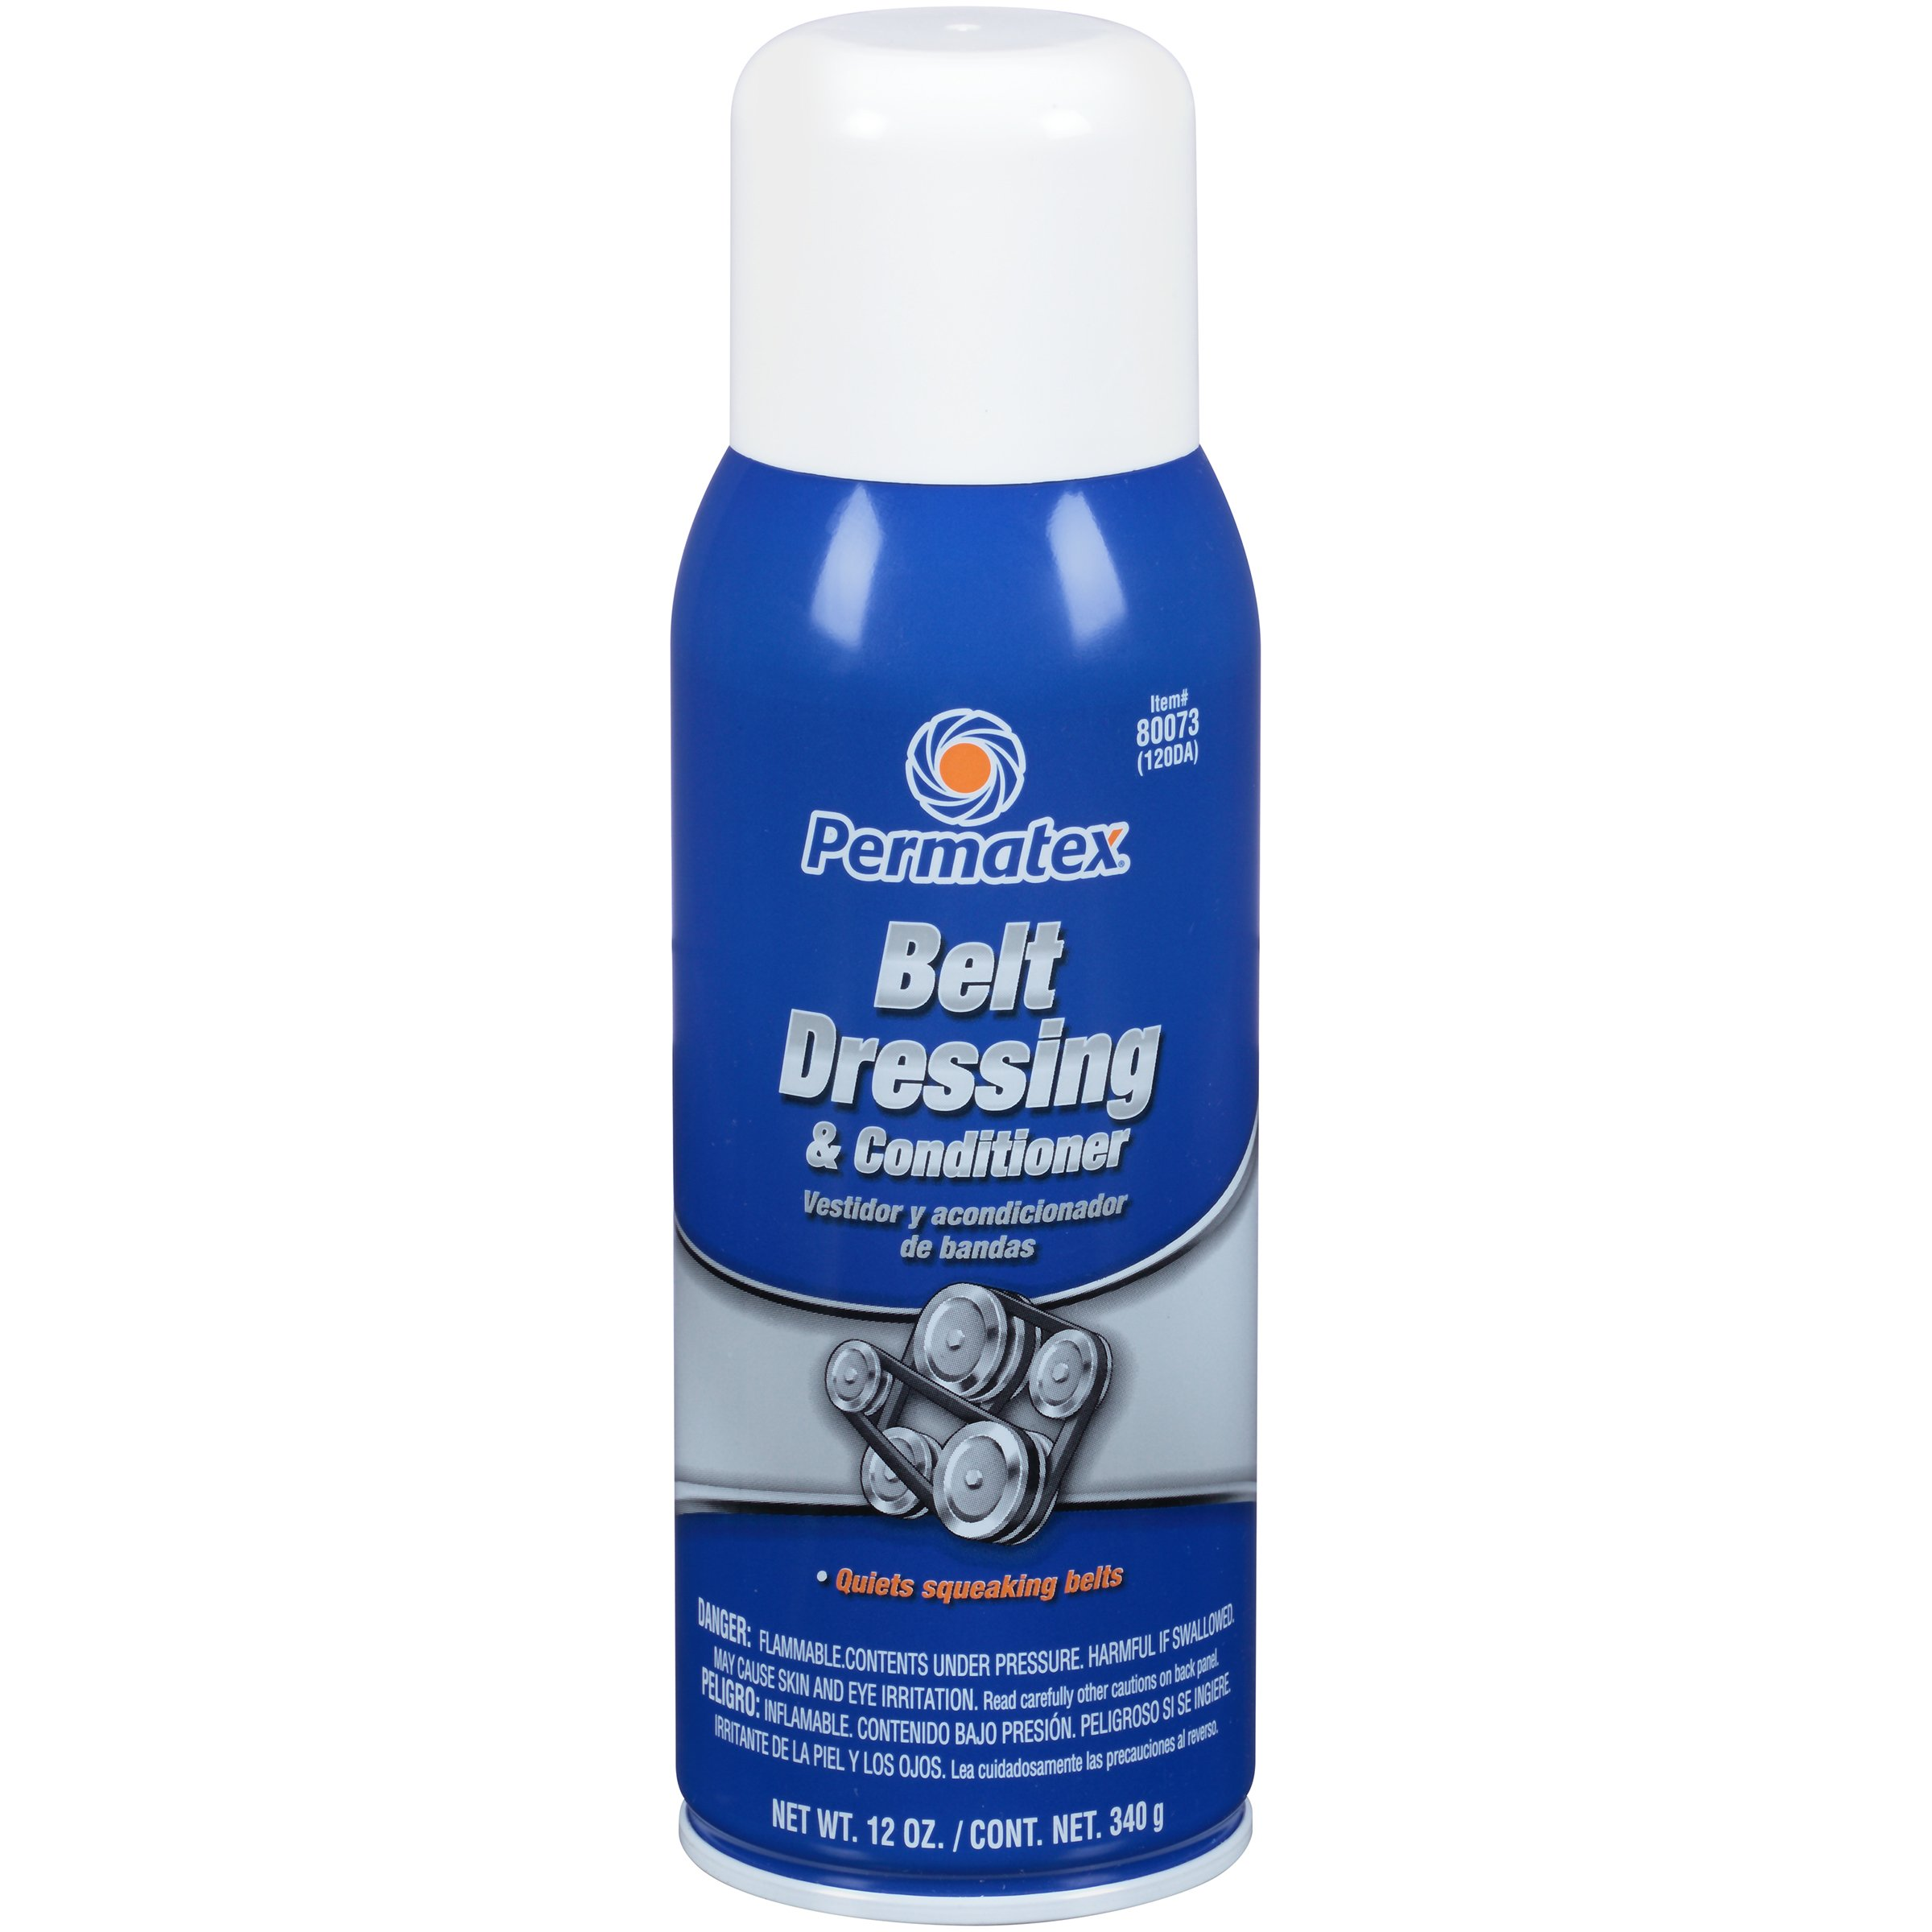 Permatex 80073-12PK Belt Dressing and Conditioner, 12 oz. net Aerosol Can (Pack of 12) by Permatex